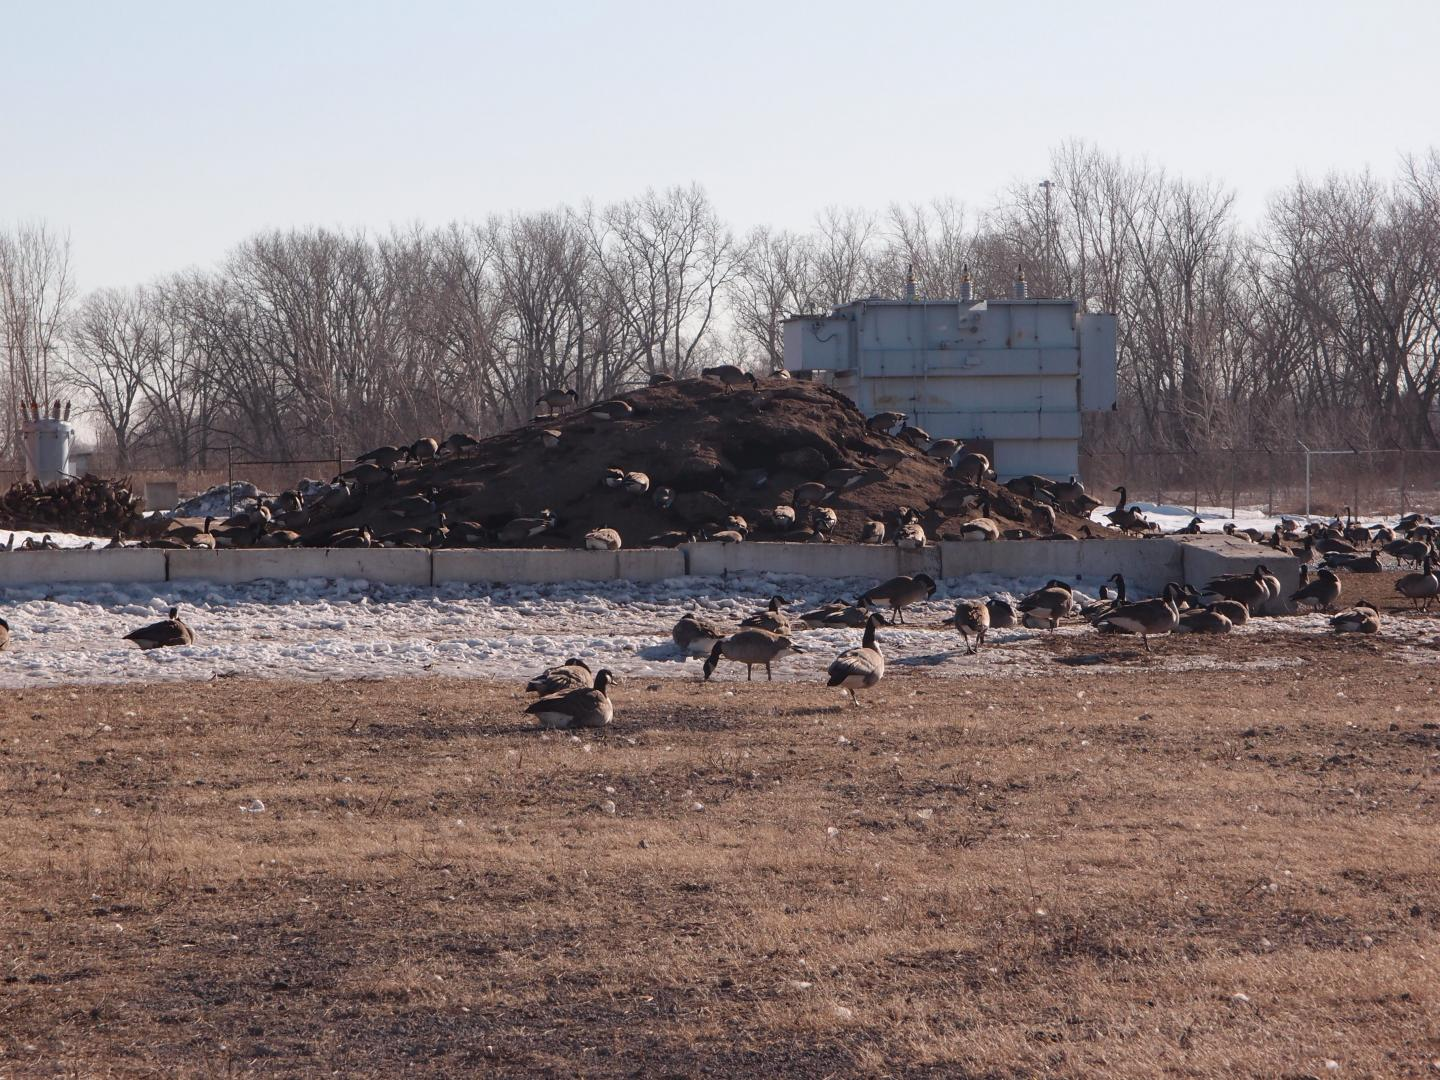 Canada Geese Spending the Winter in Chicago